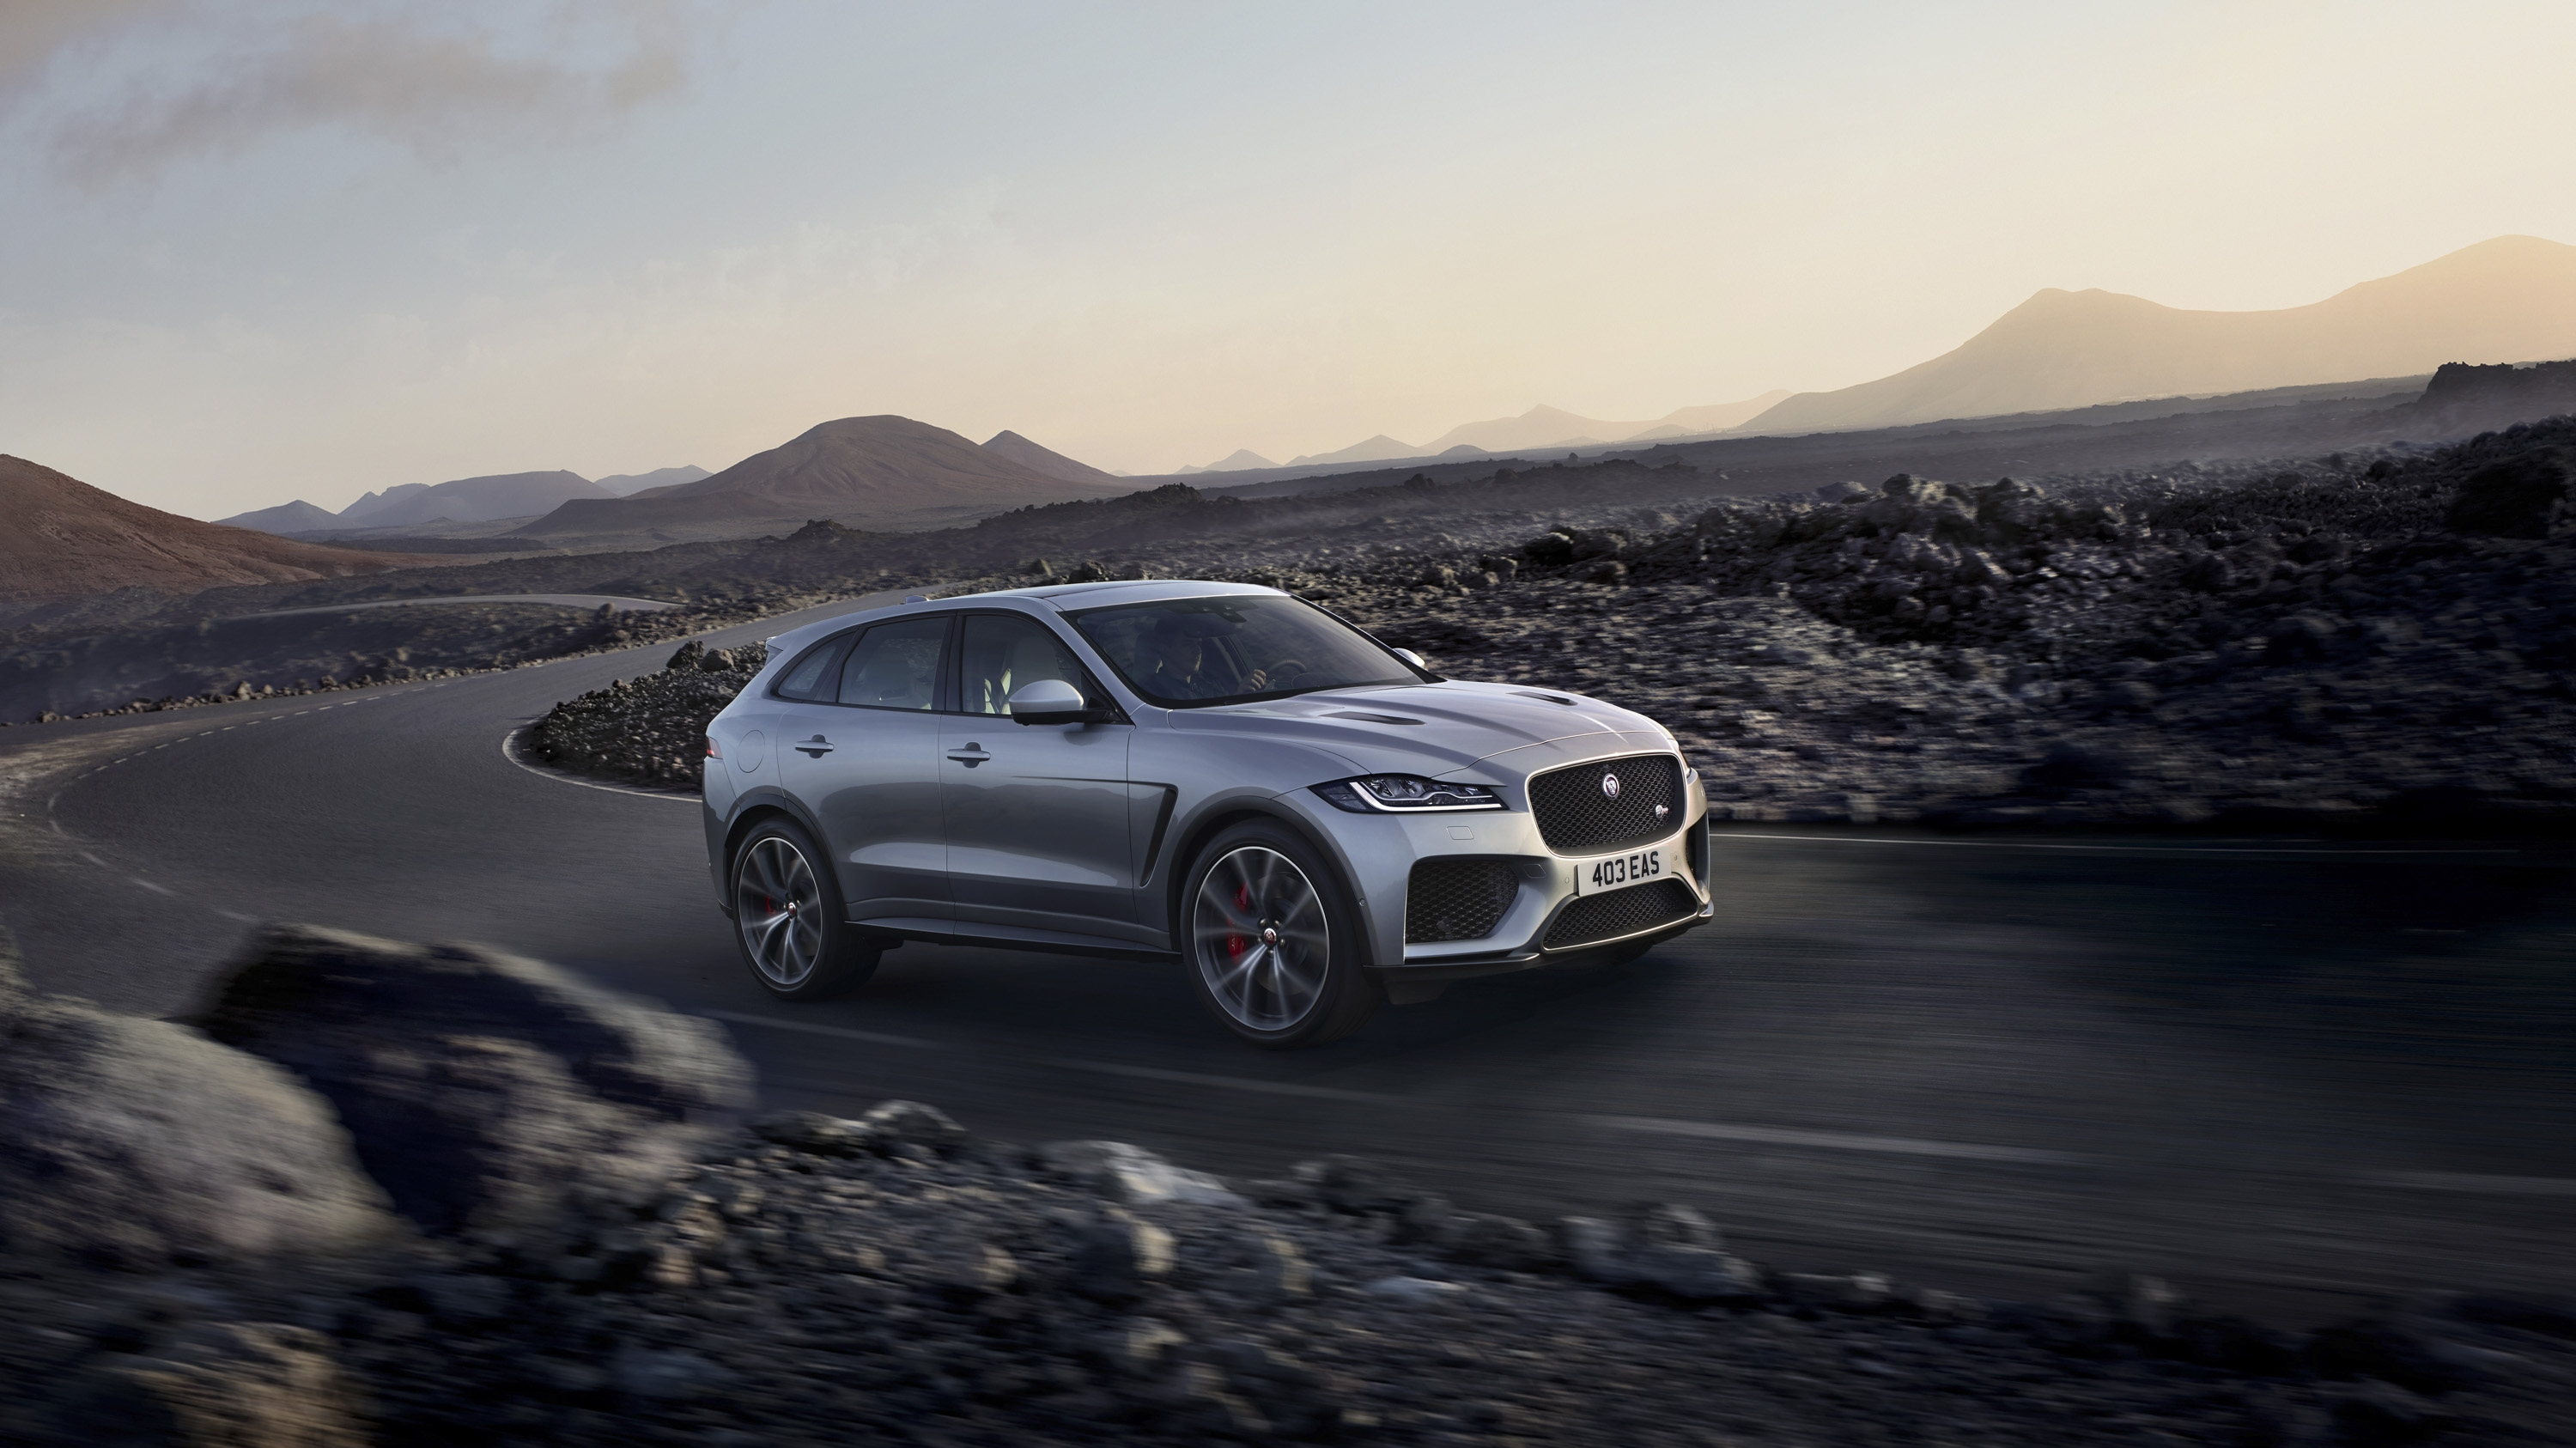 The Jaguar F Pace Svr Just Rendered The Upcoming Bmw X3 M